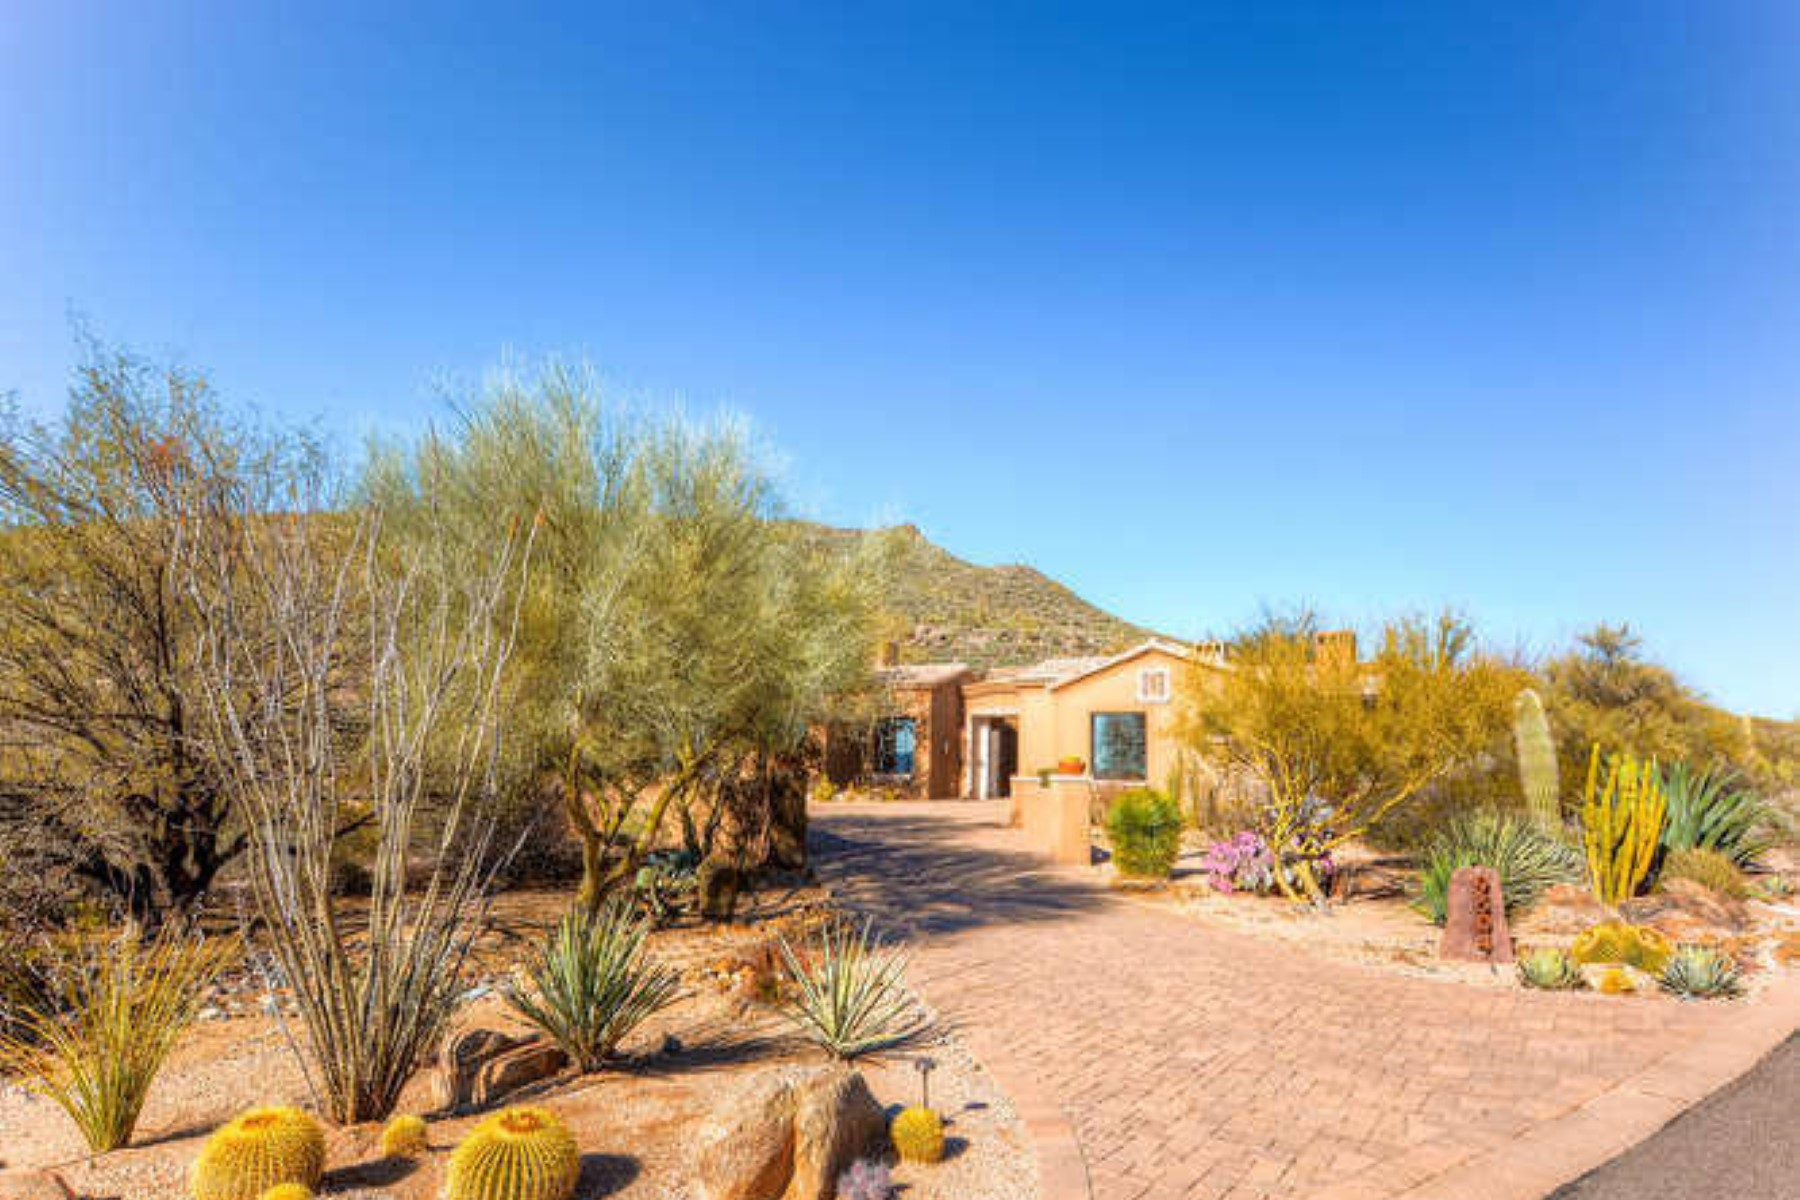 Single Family Home for Sale at Romantic Mediterranean style home 9504 E Covey Trail Scottsdale, Arizona, 85262 United States